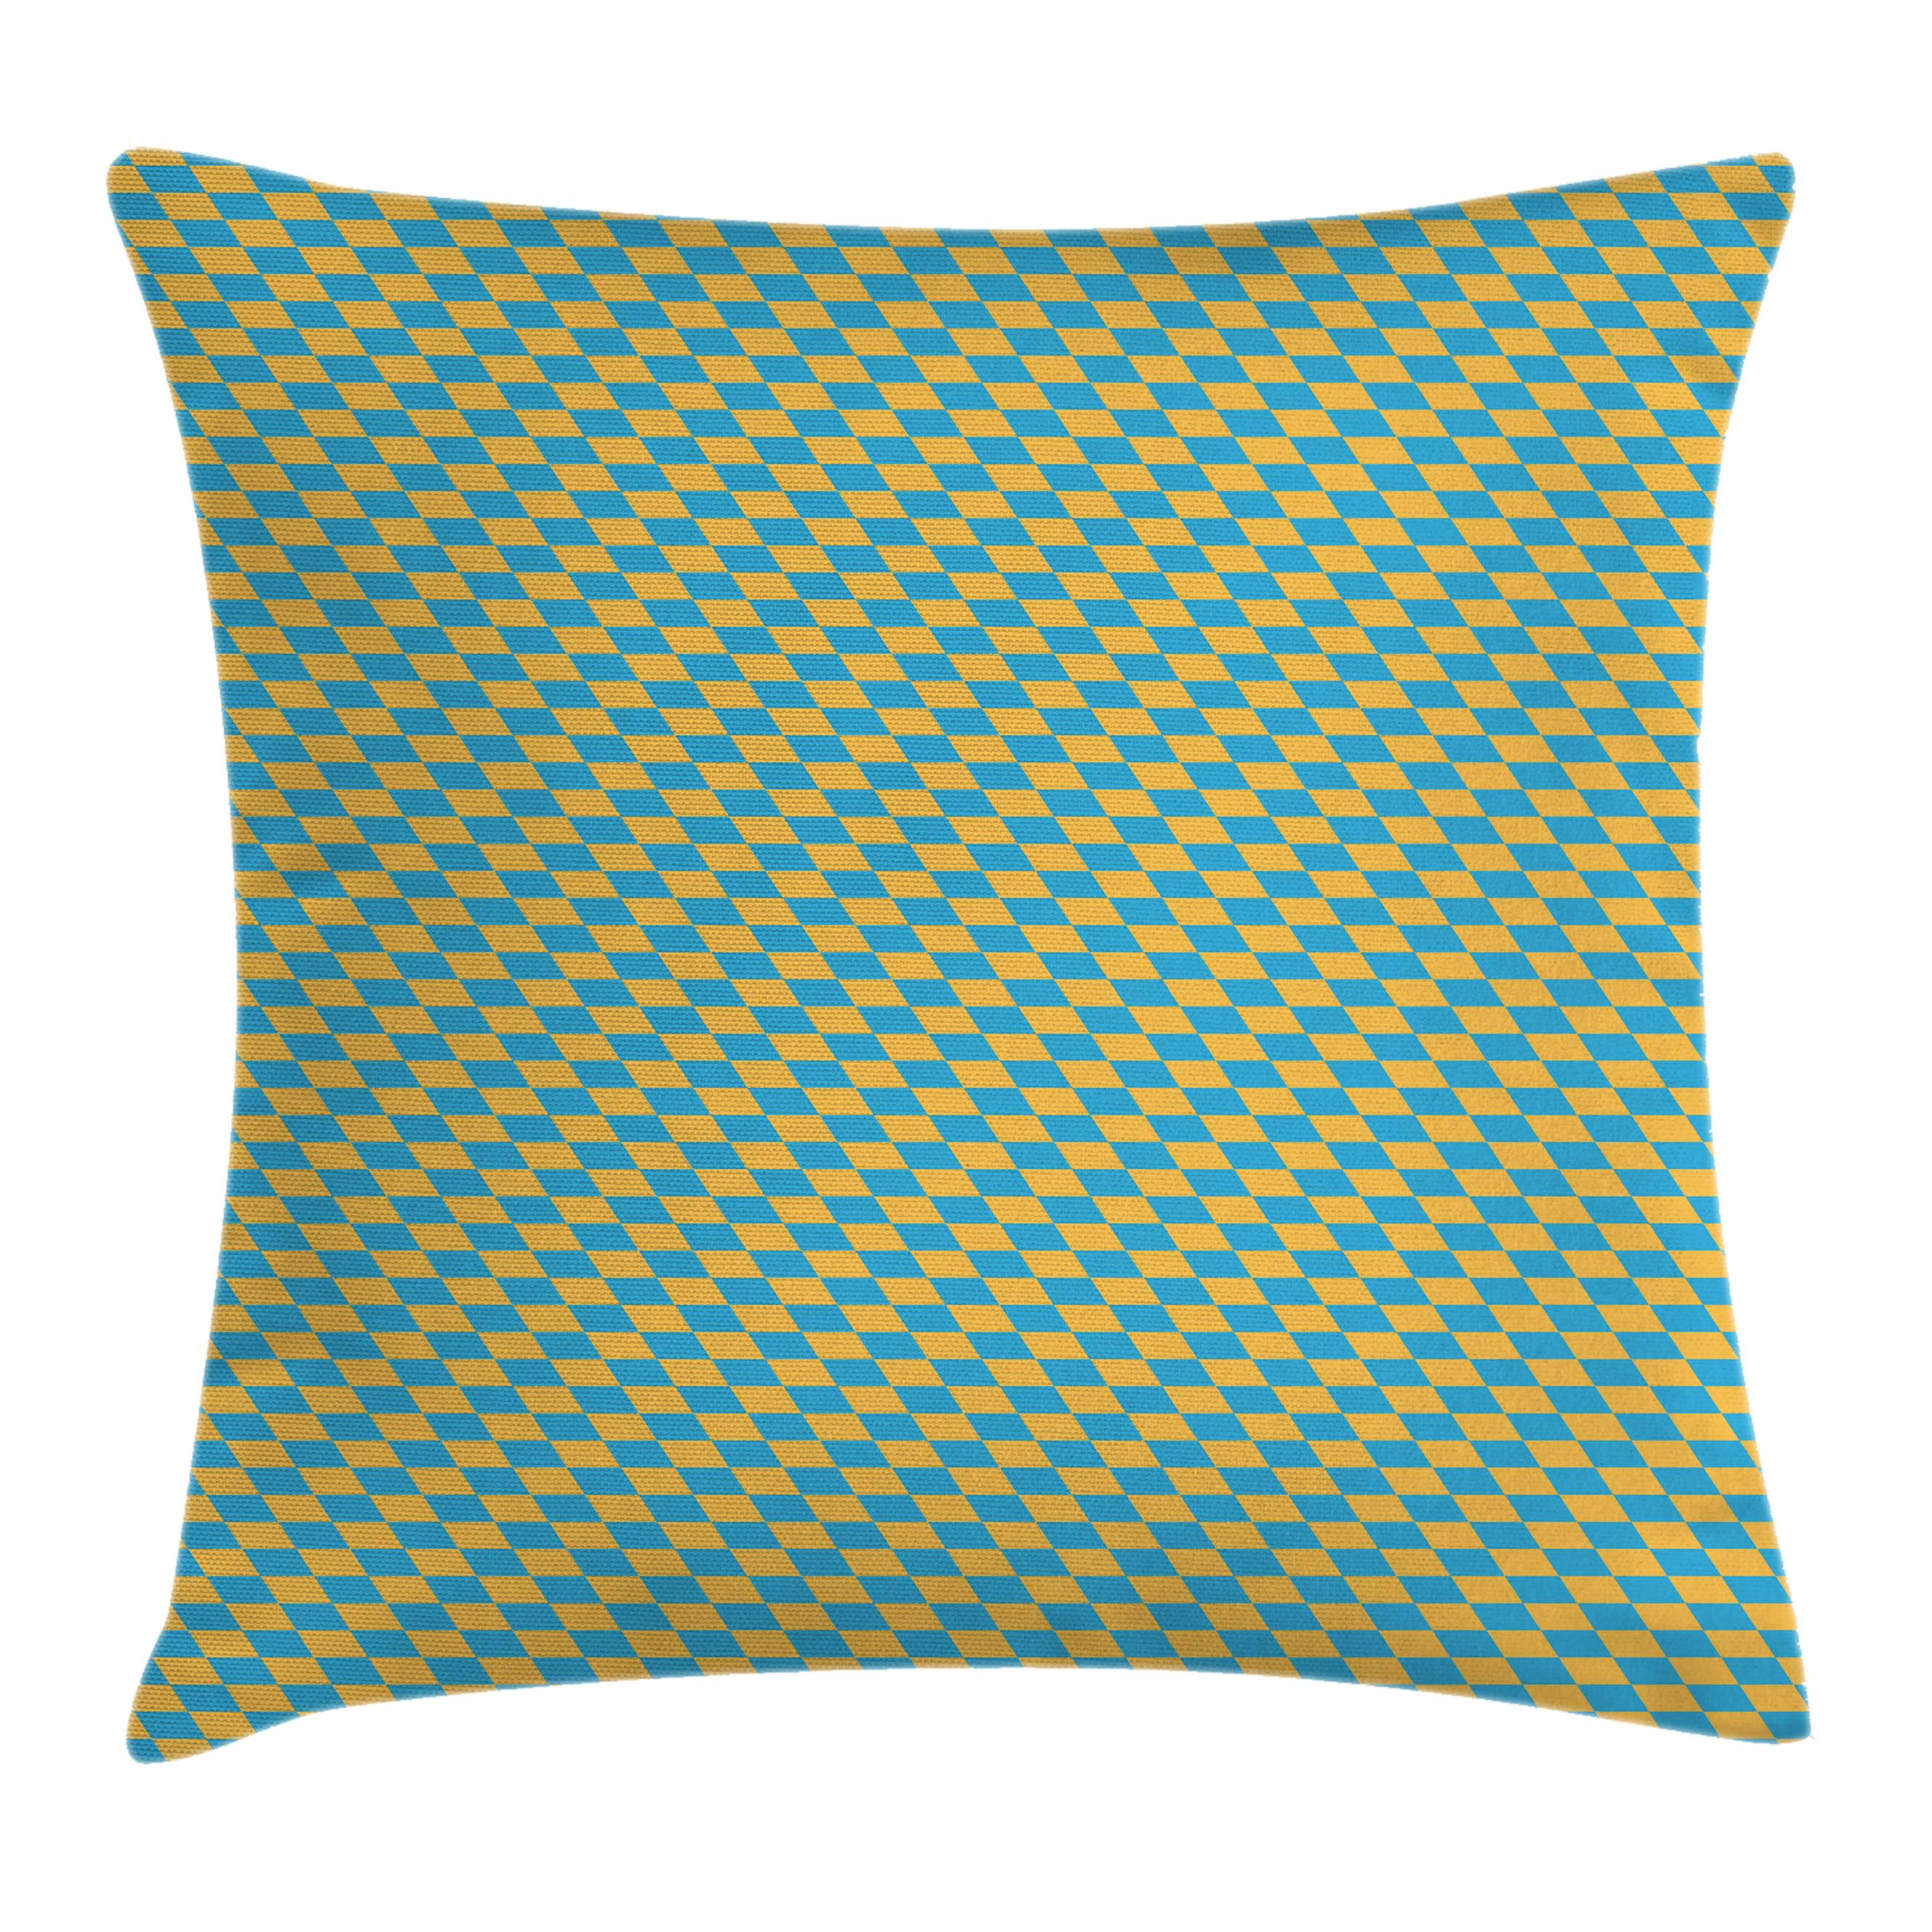 Kids Throw Pillow Cushion Cover, Diagonal Geometrical Retro Pattern Skewed Squares Tile Design in Shabby Colors, Decorative Square Accent Pillow Case, 16 X 16 Inches, Marigold Sky Blue, by Ambesonne